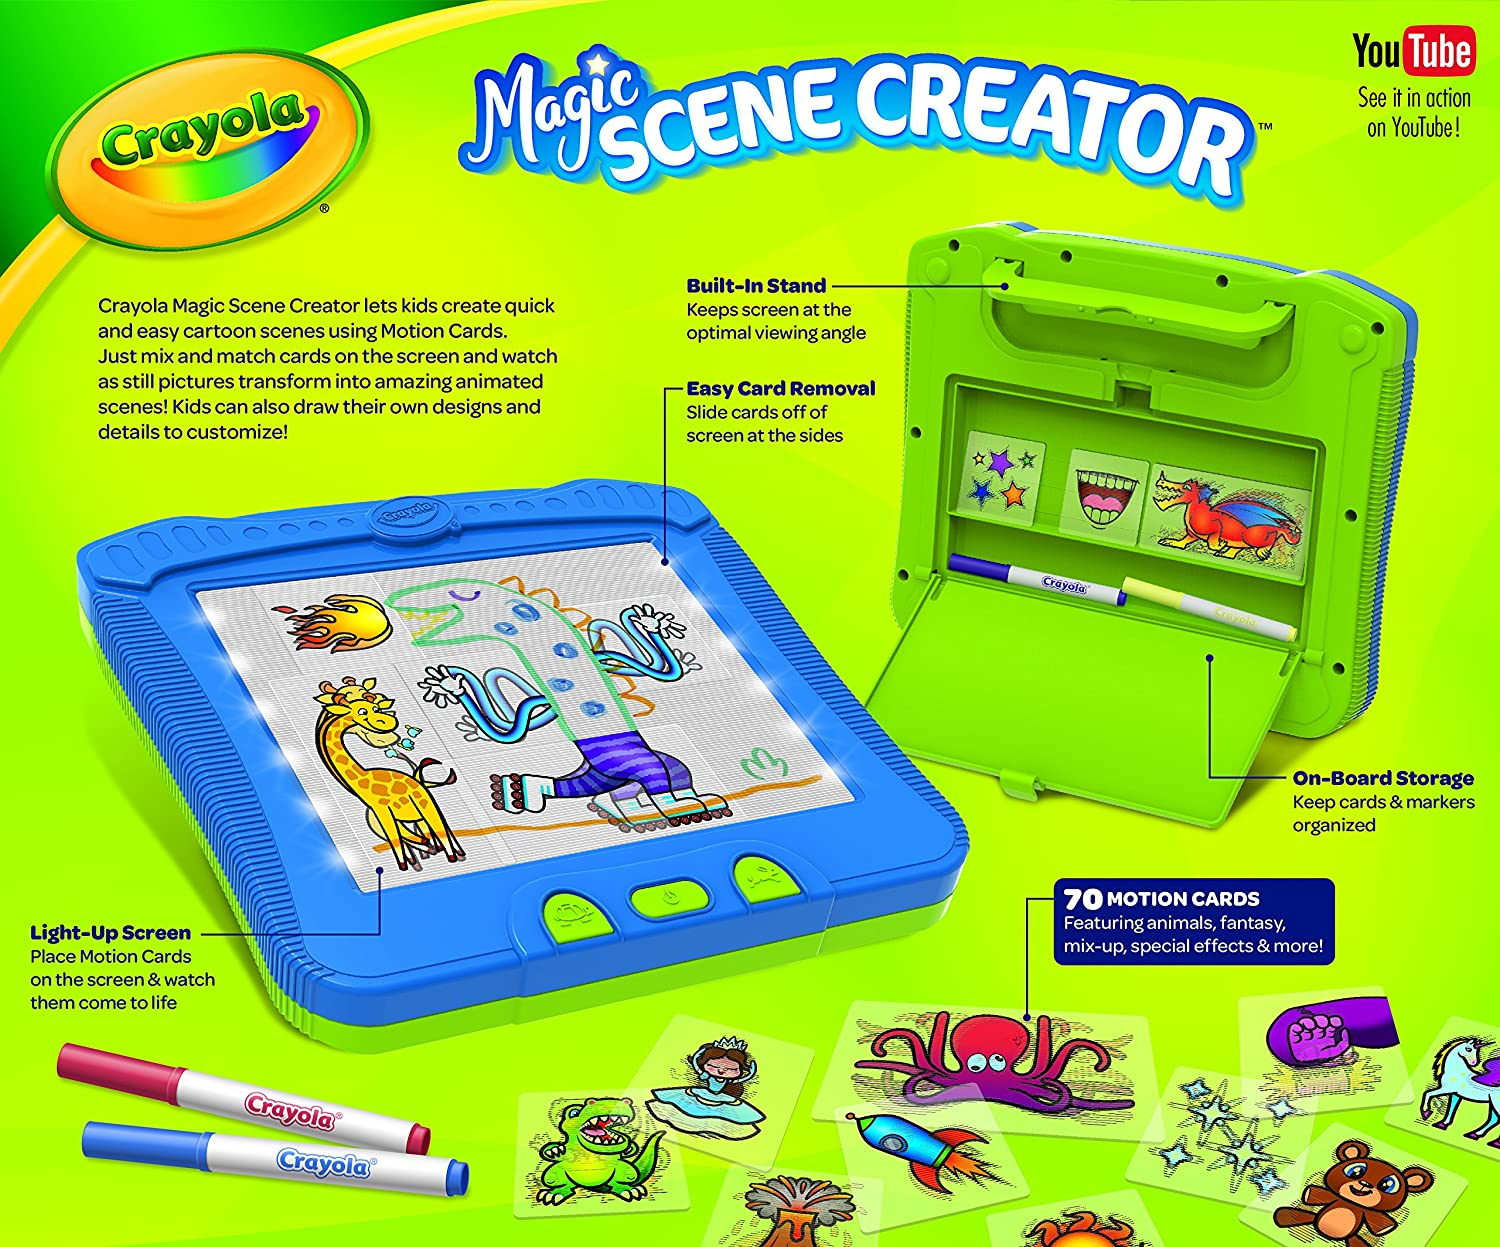 mamas on magic 107 9 at what age should kids cell how can i get a phone Amazon.com: Crayola Magic Scene Creator, Drawing Kit for Kids, Creative  Toys, Ages 3, 4, 5, 6, 7: Toys u0026 Games